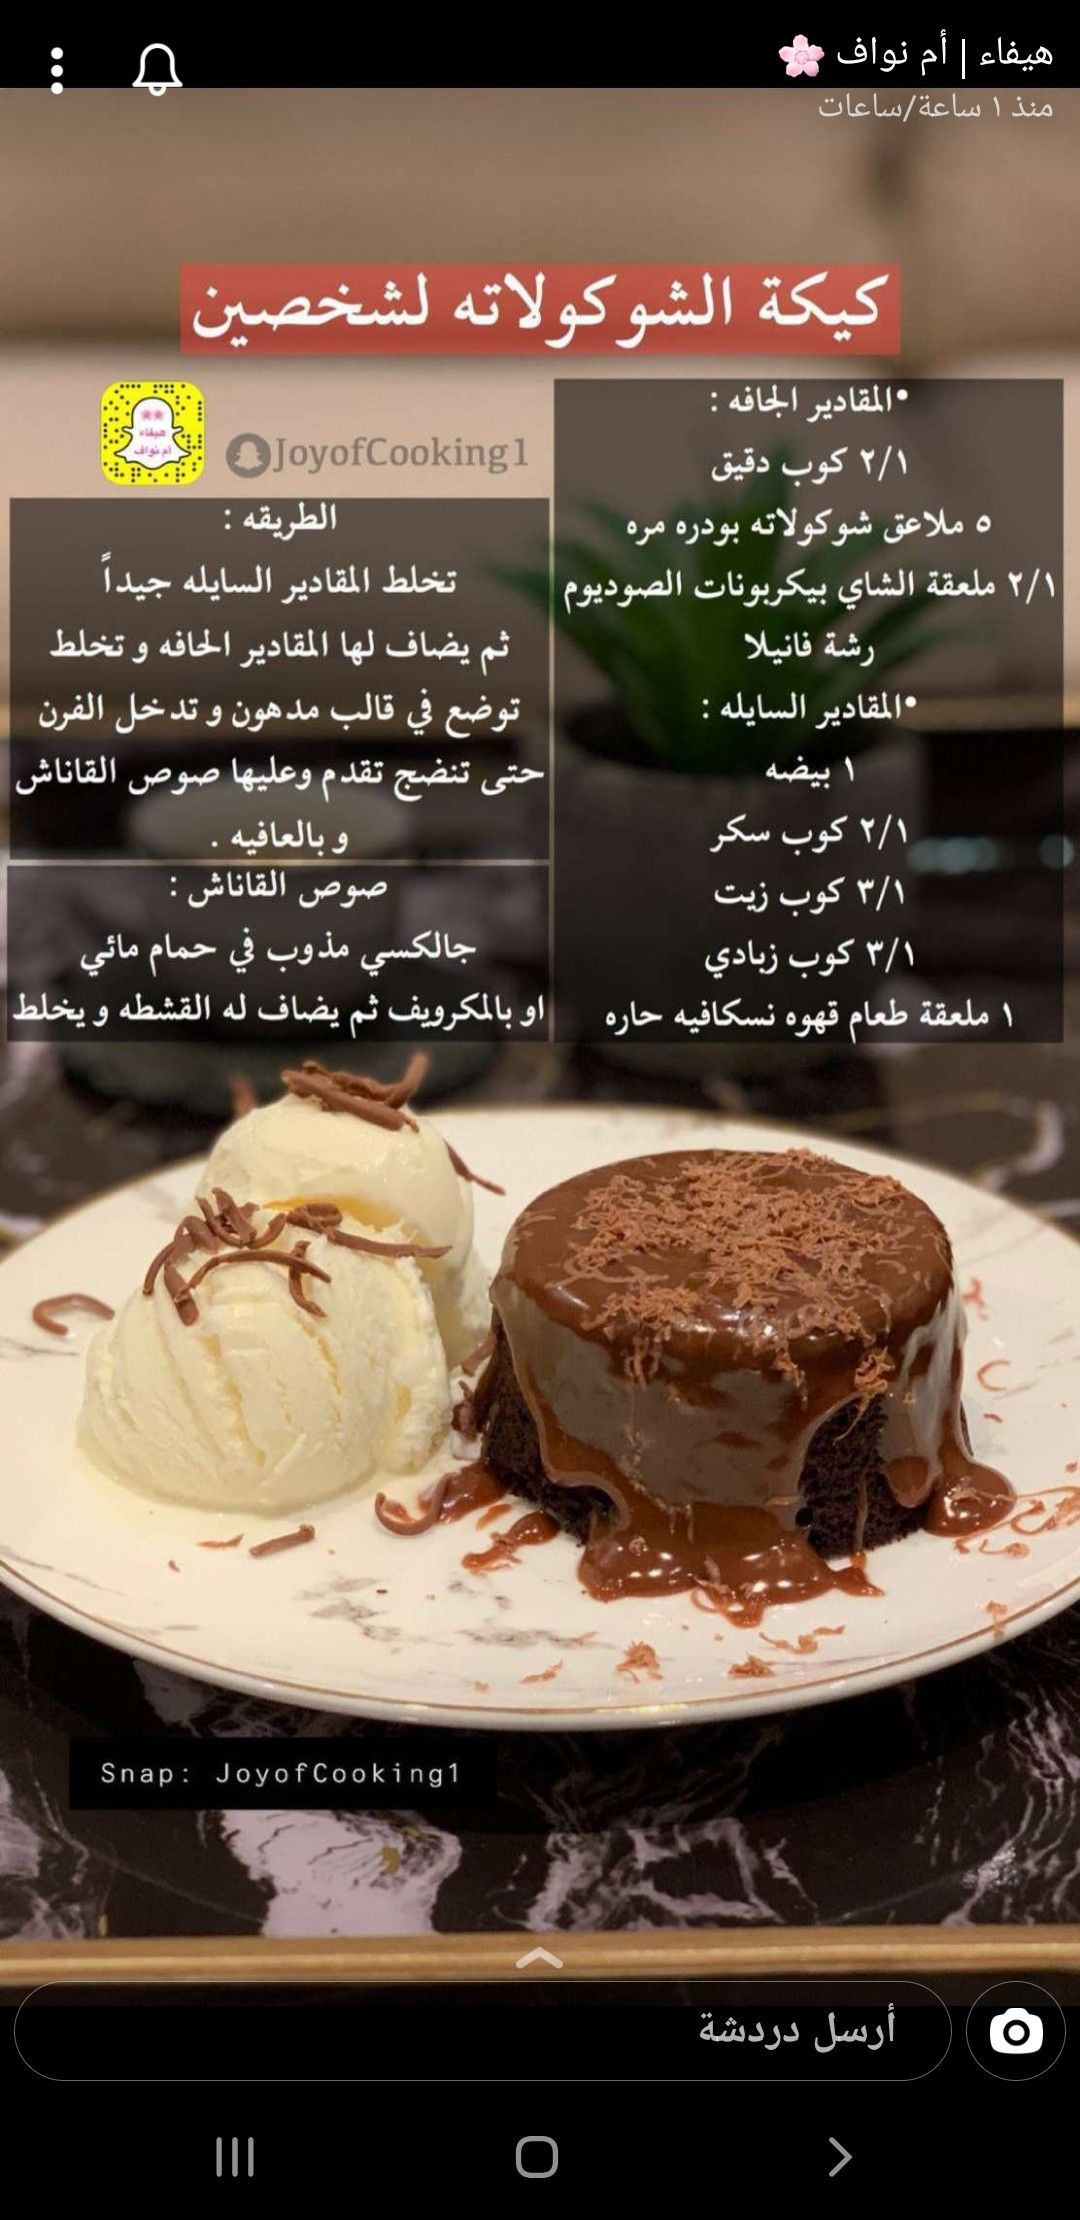 Pin By Msail On Arabic Food In 2020 Dessert Ingredients Yummy Food Dessert Sweets Recipes